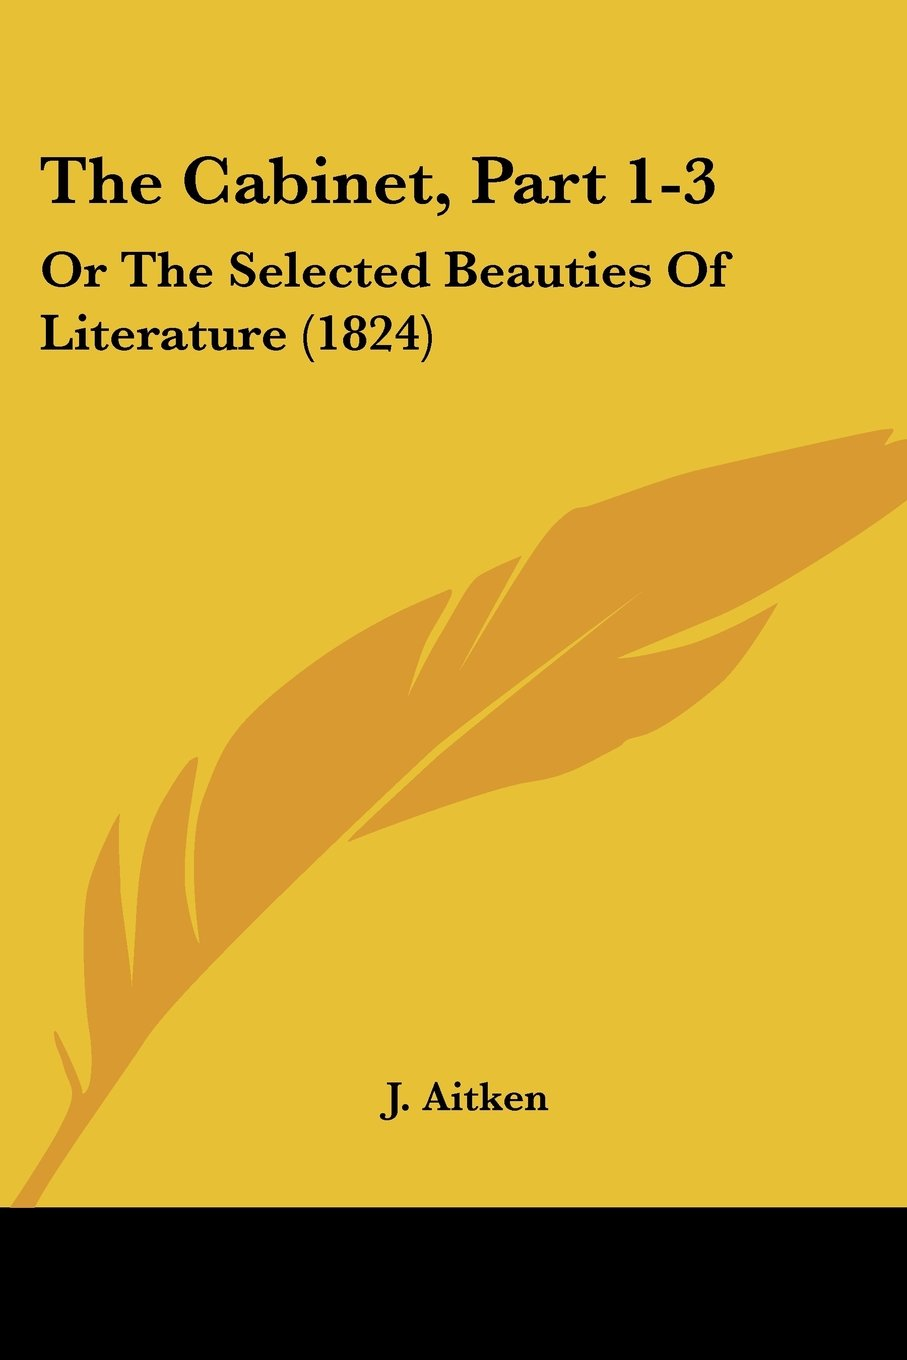 The Cabinet, Part 1-3: Or The Selected Beauties Of Literature (1824) pdf